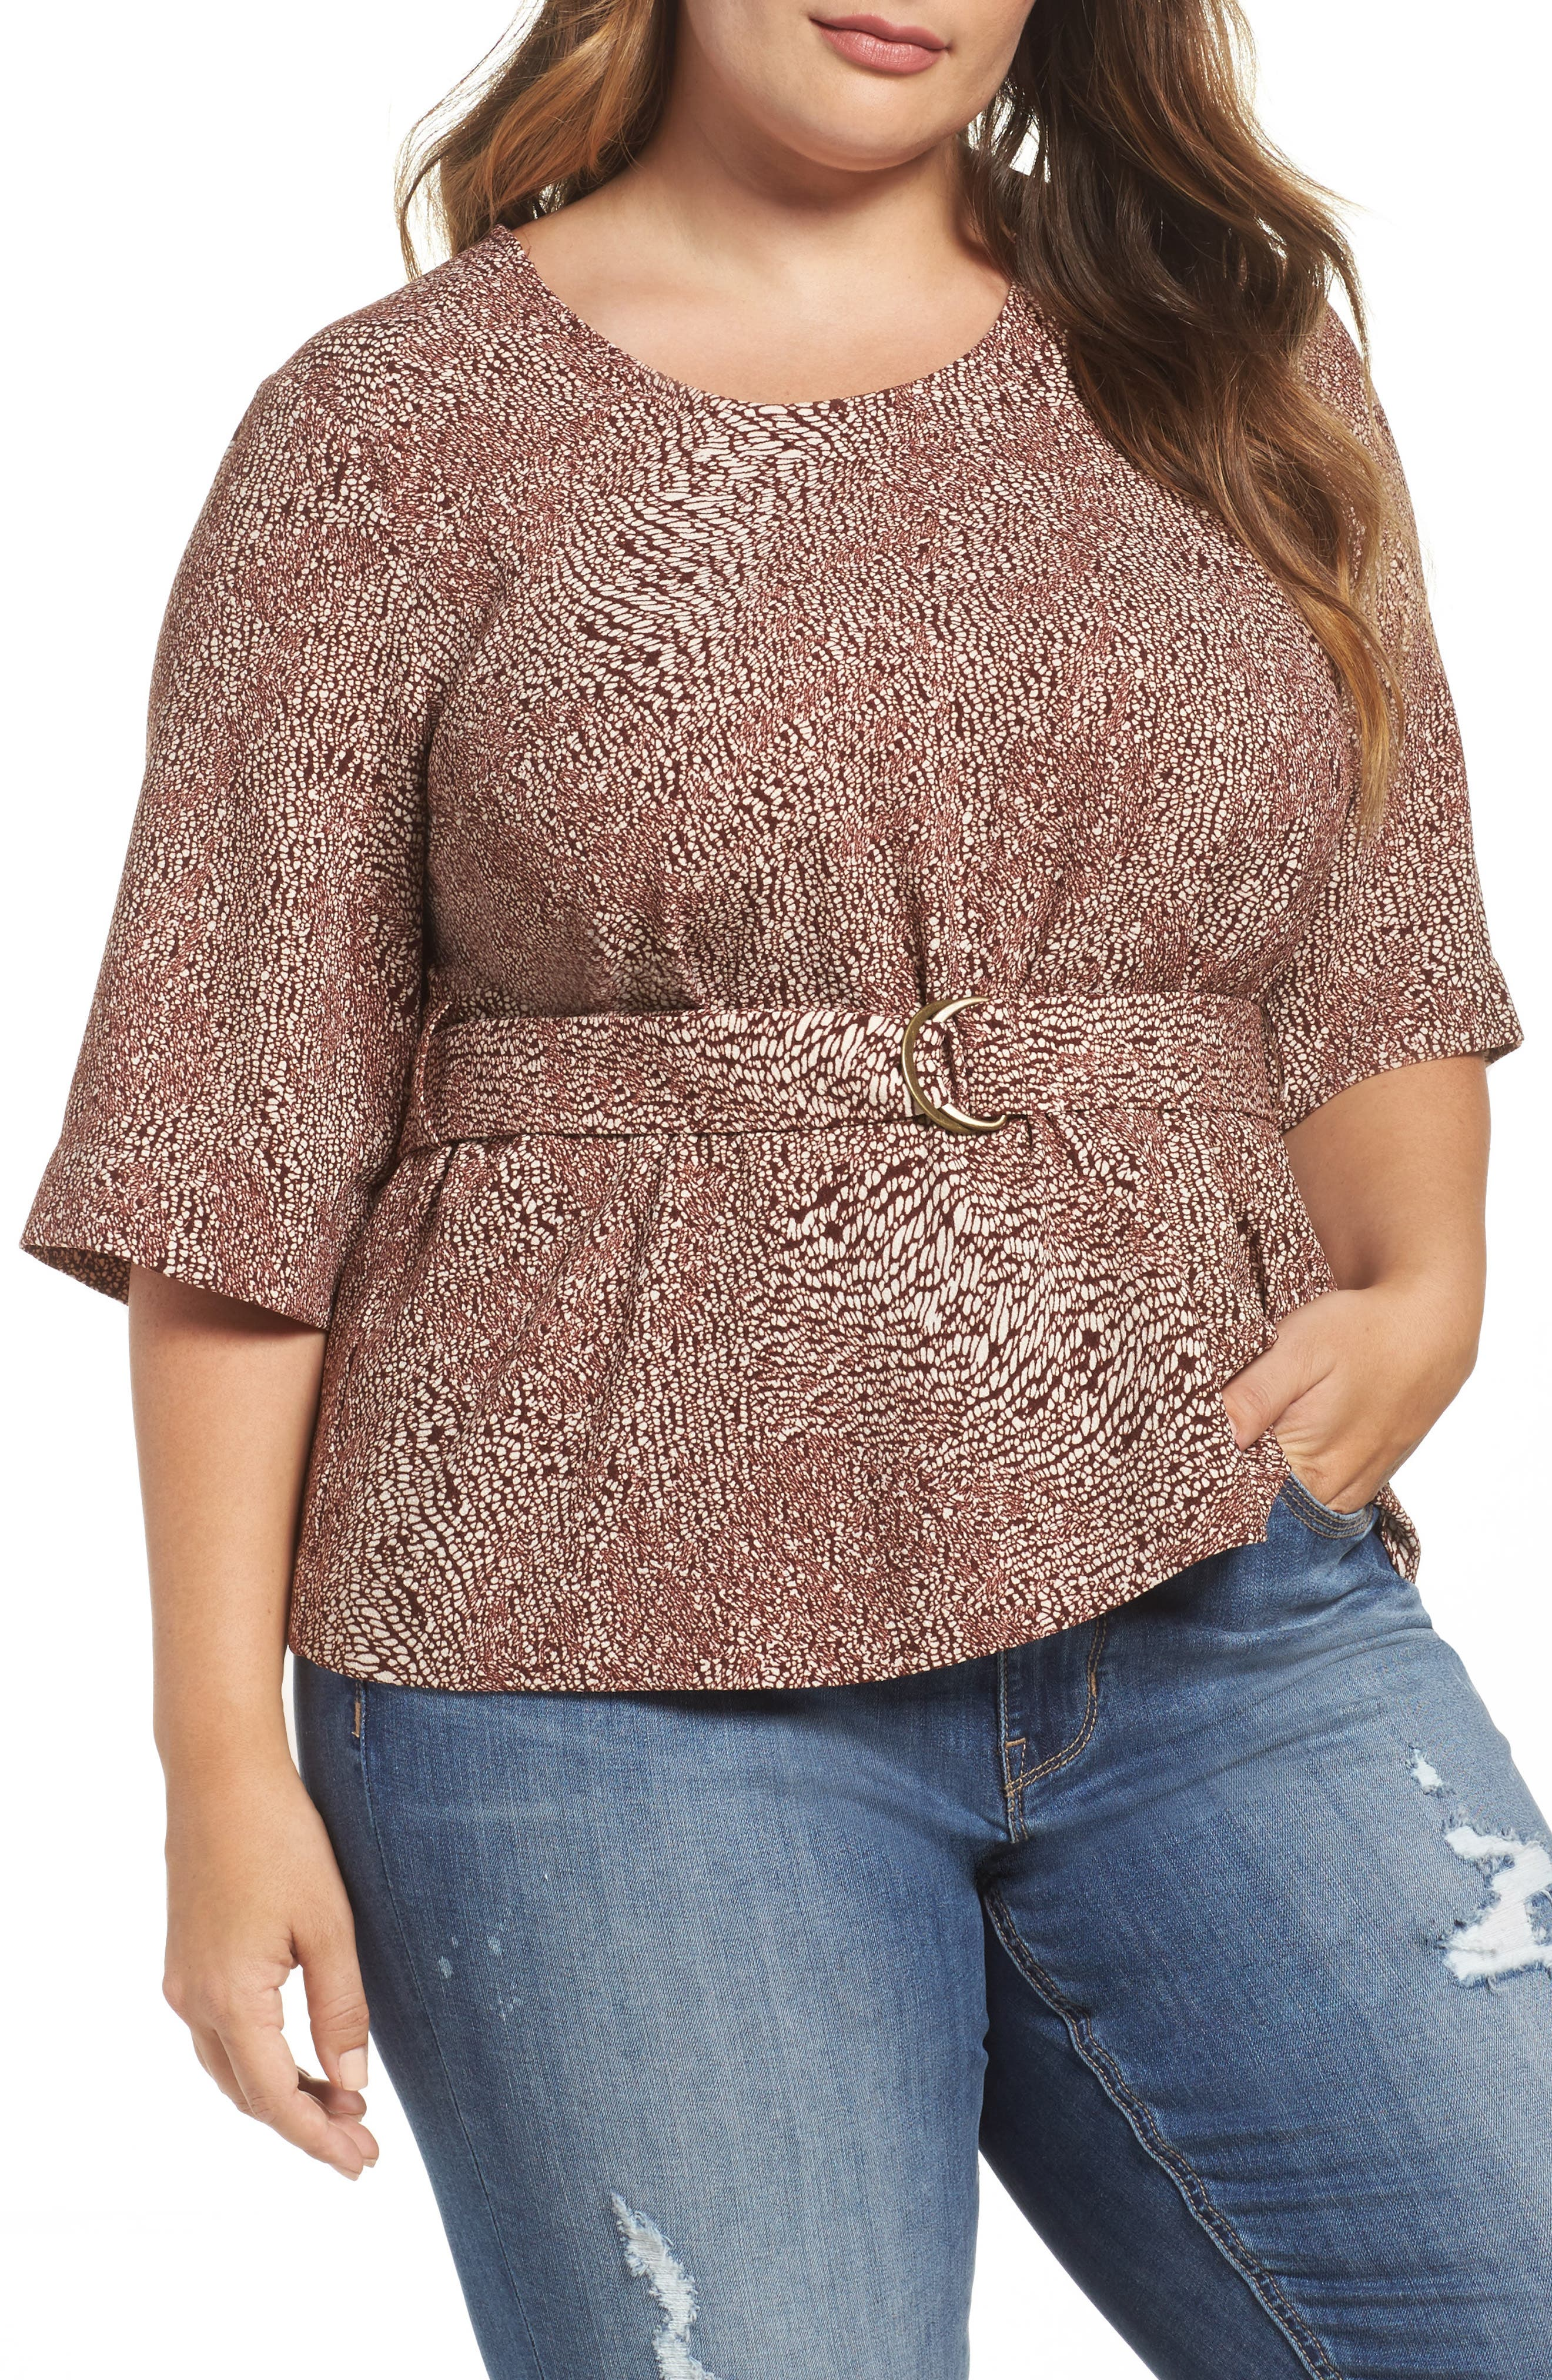 Alternate Image 1 Selected - Melissa McCarthy Seven7 D-Ring Belt Blouse (Plus Size)